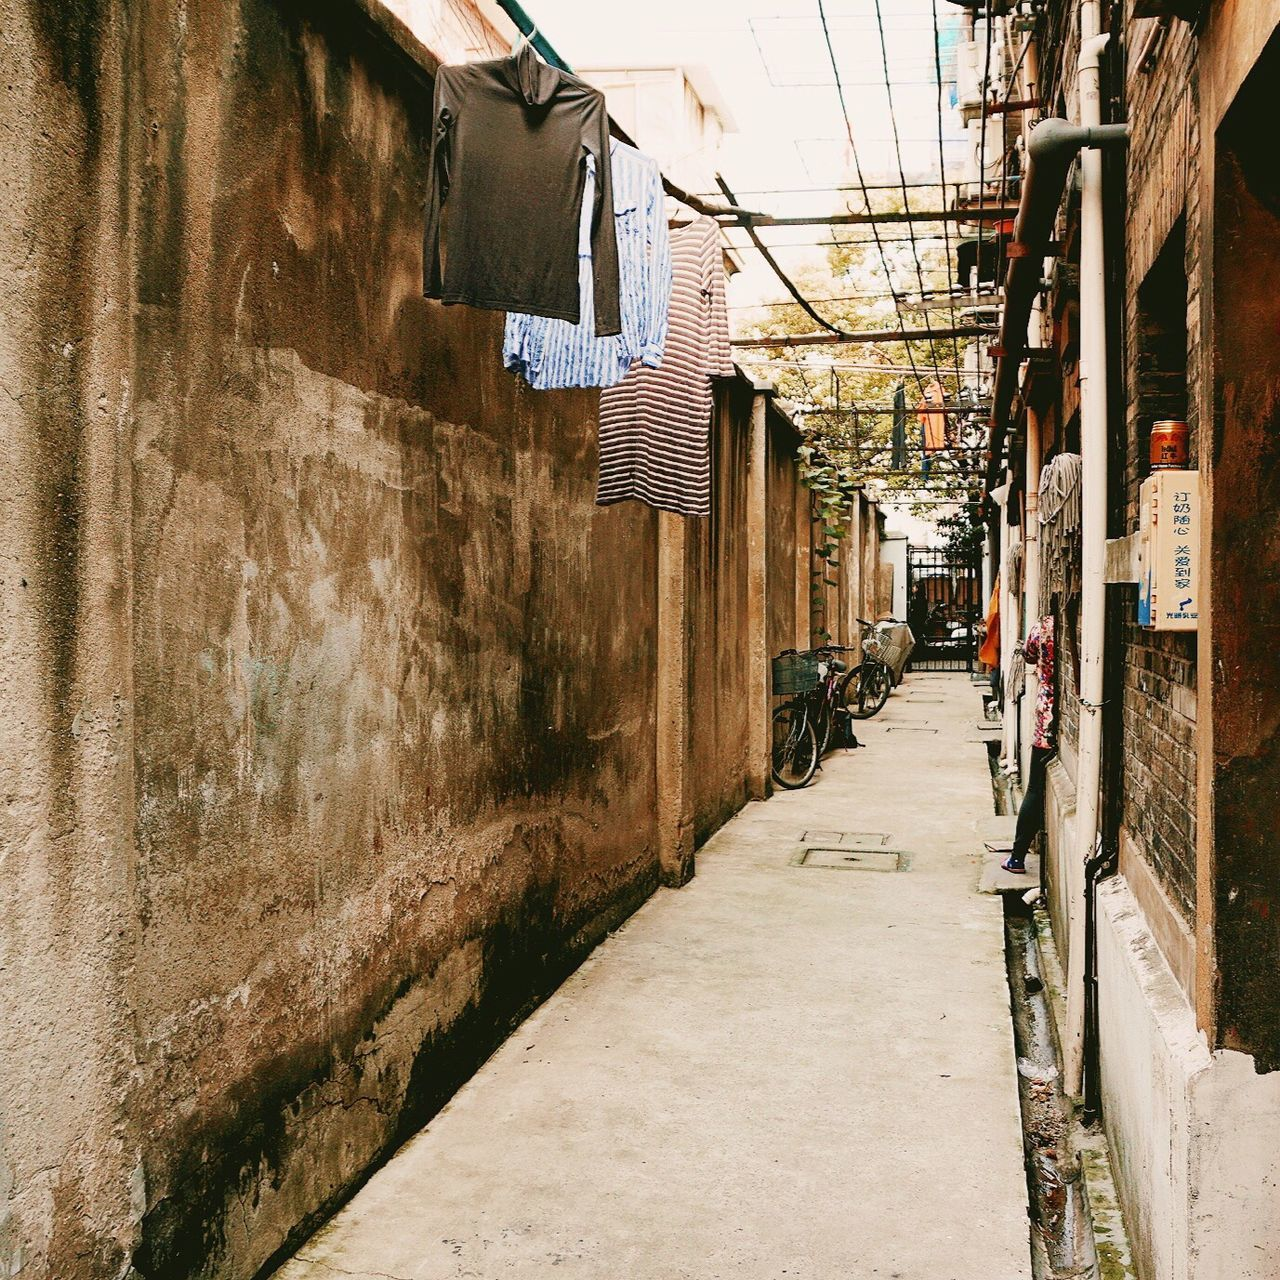 architecture, built structure, building exterior, the way forward, alley, day, outdoors, residential building, city, no people